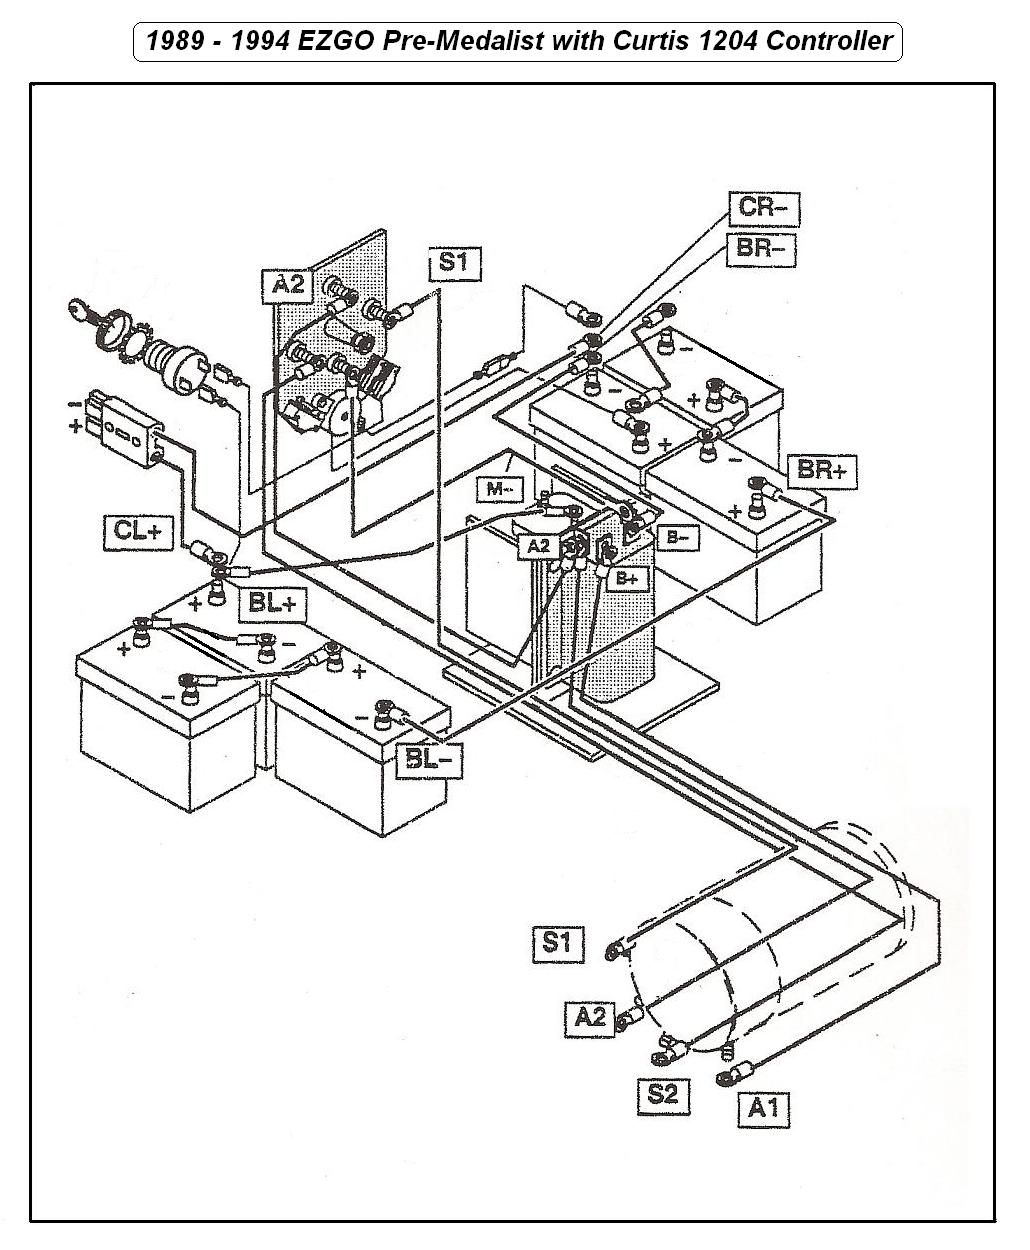 A89_94EZ_Wiring ezgo wiring diagram ez wiring \u2022 wiring diagrams j squared co ezgo controller wiring diagram at crackthecode.co